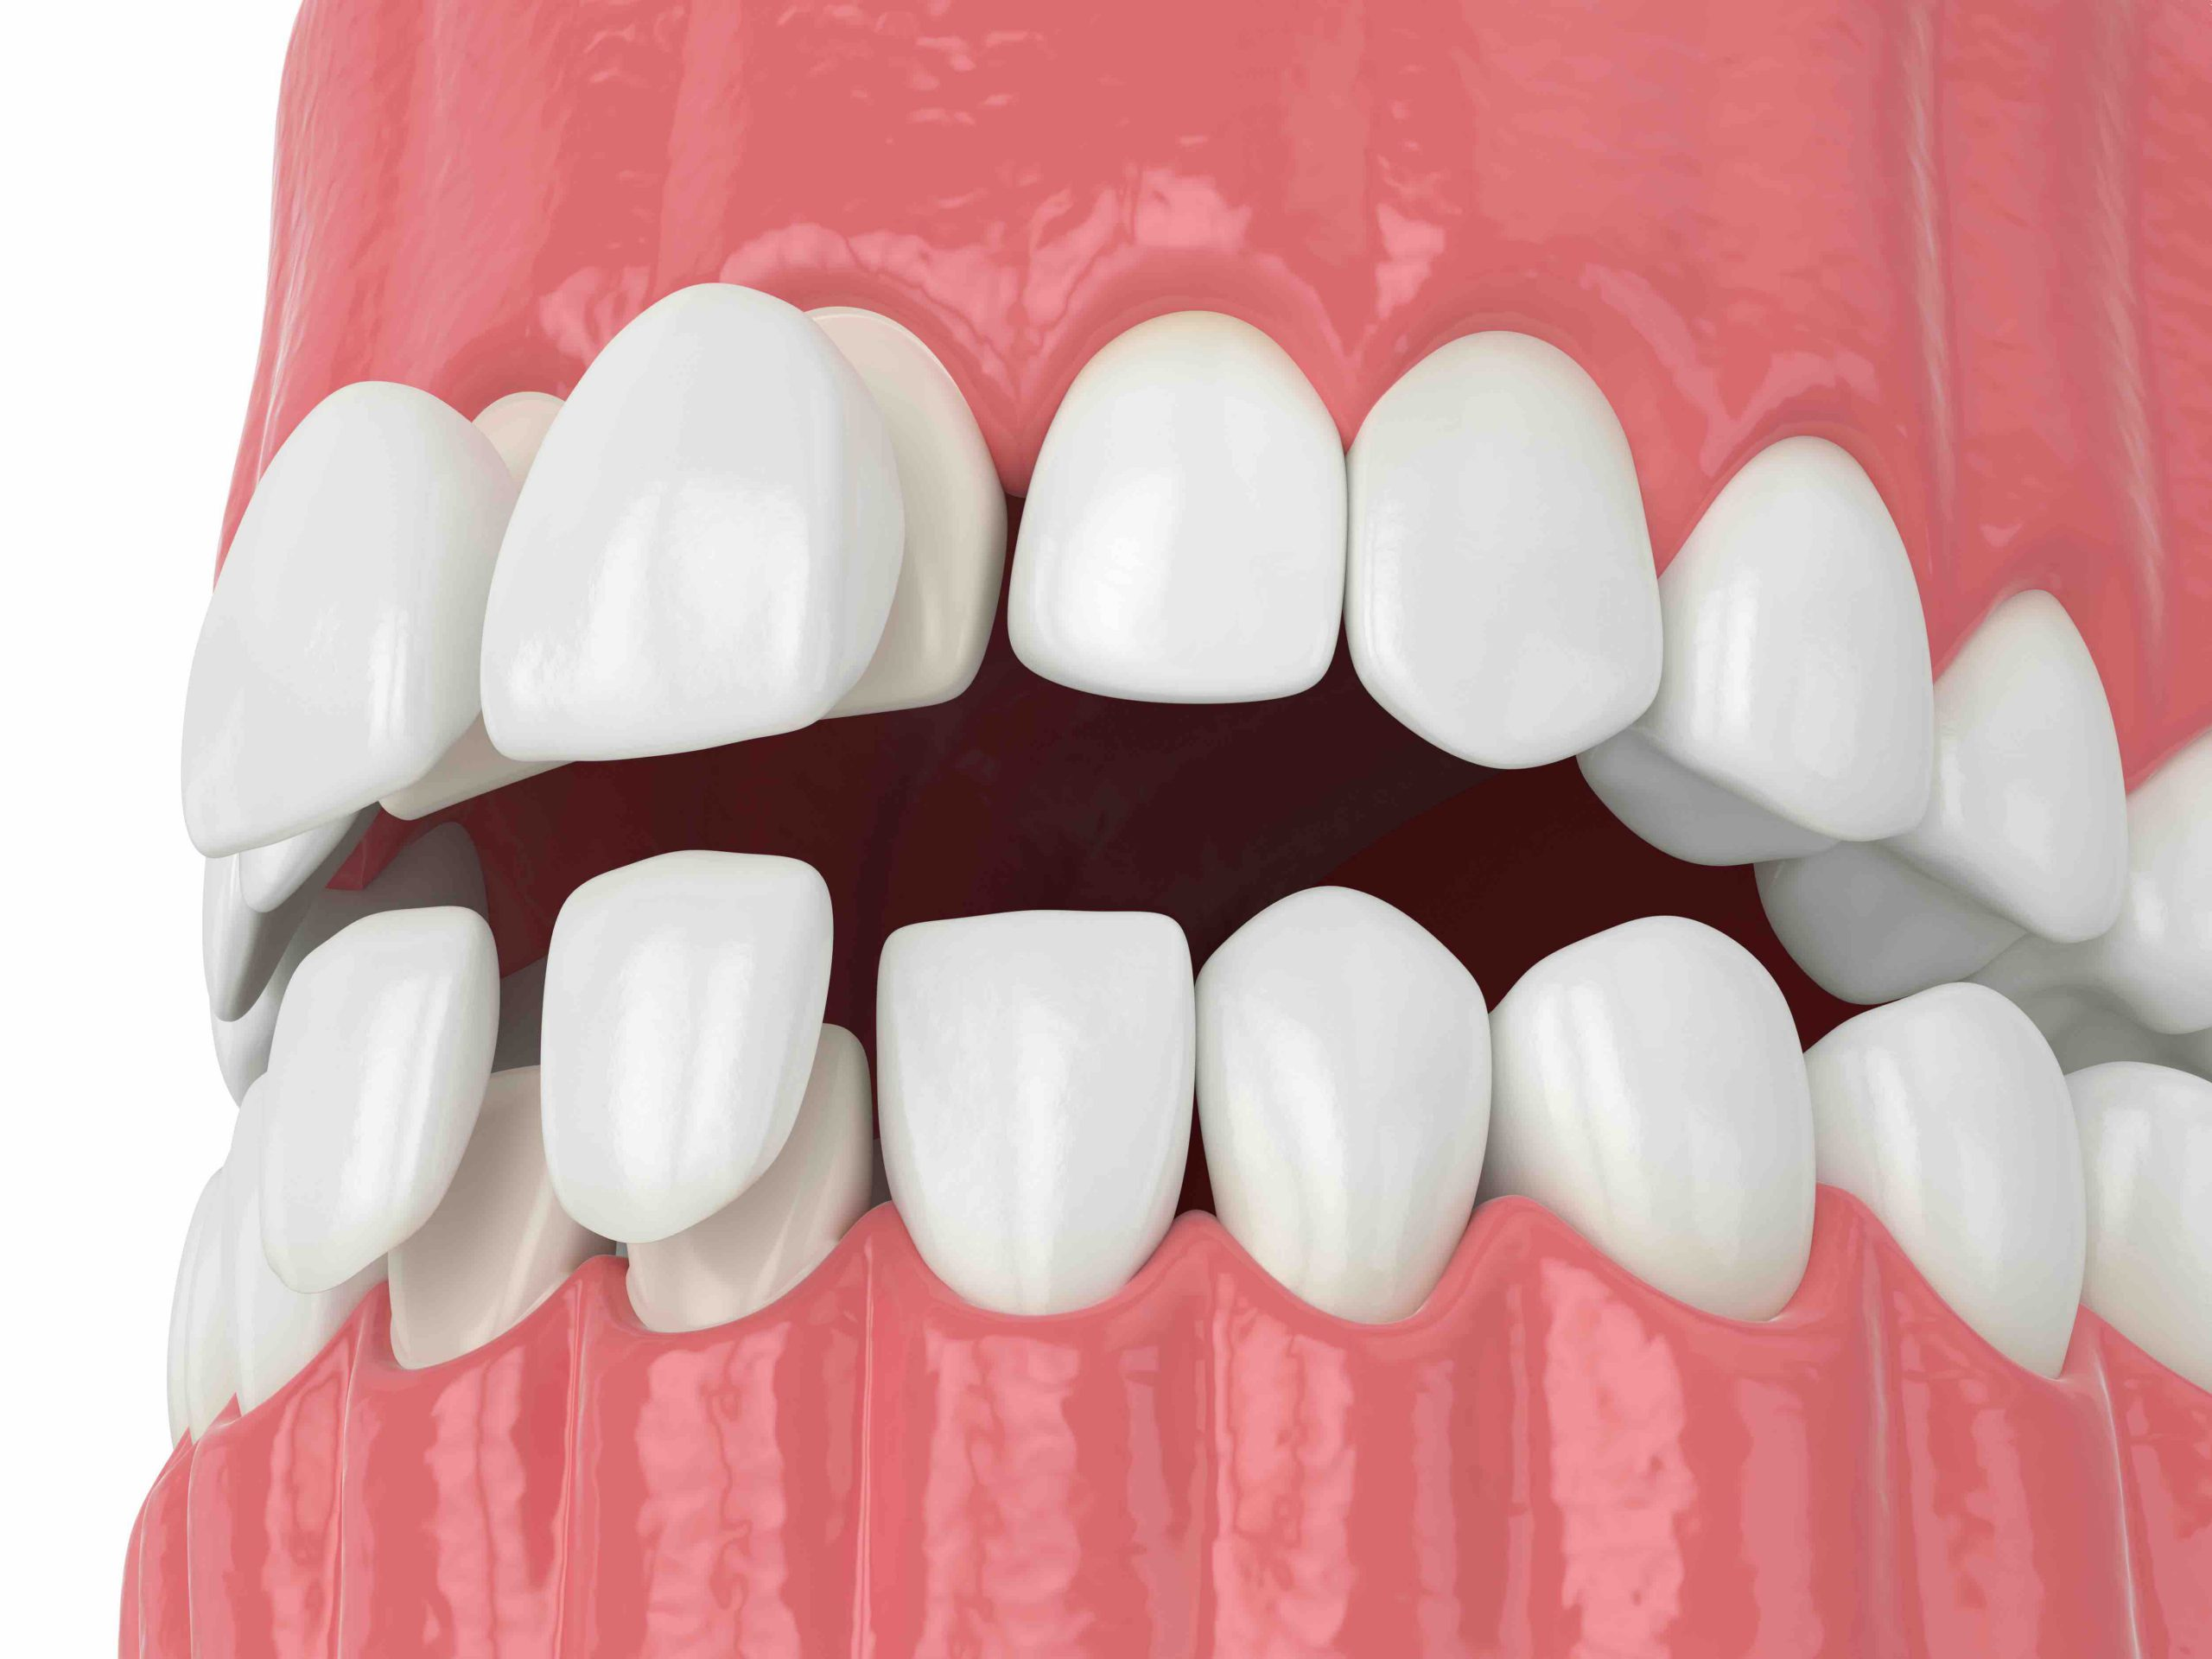 3d render of jaw with upper and lower veneers